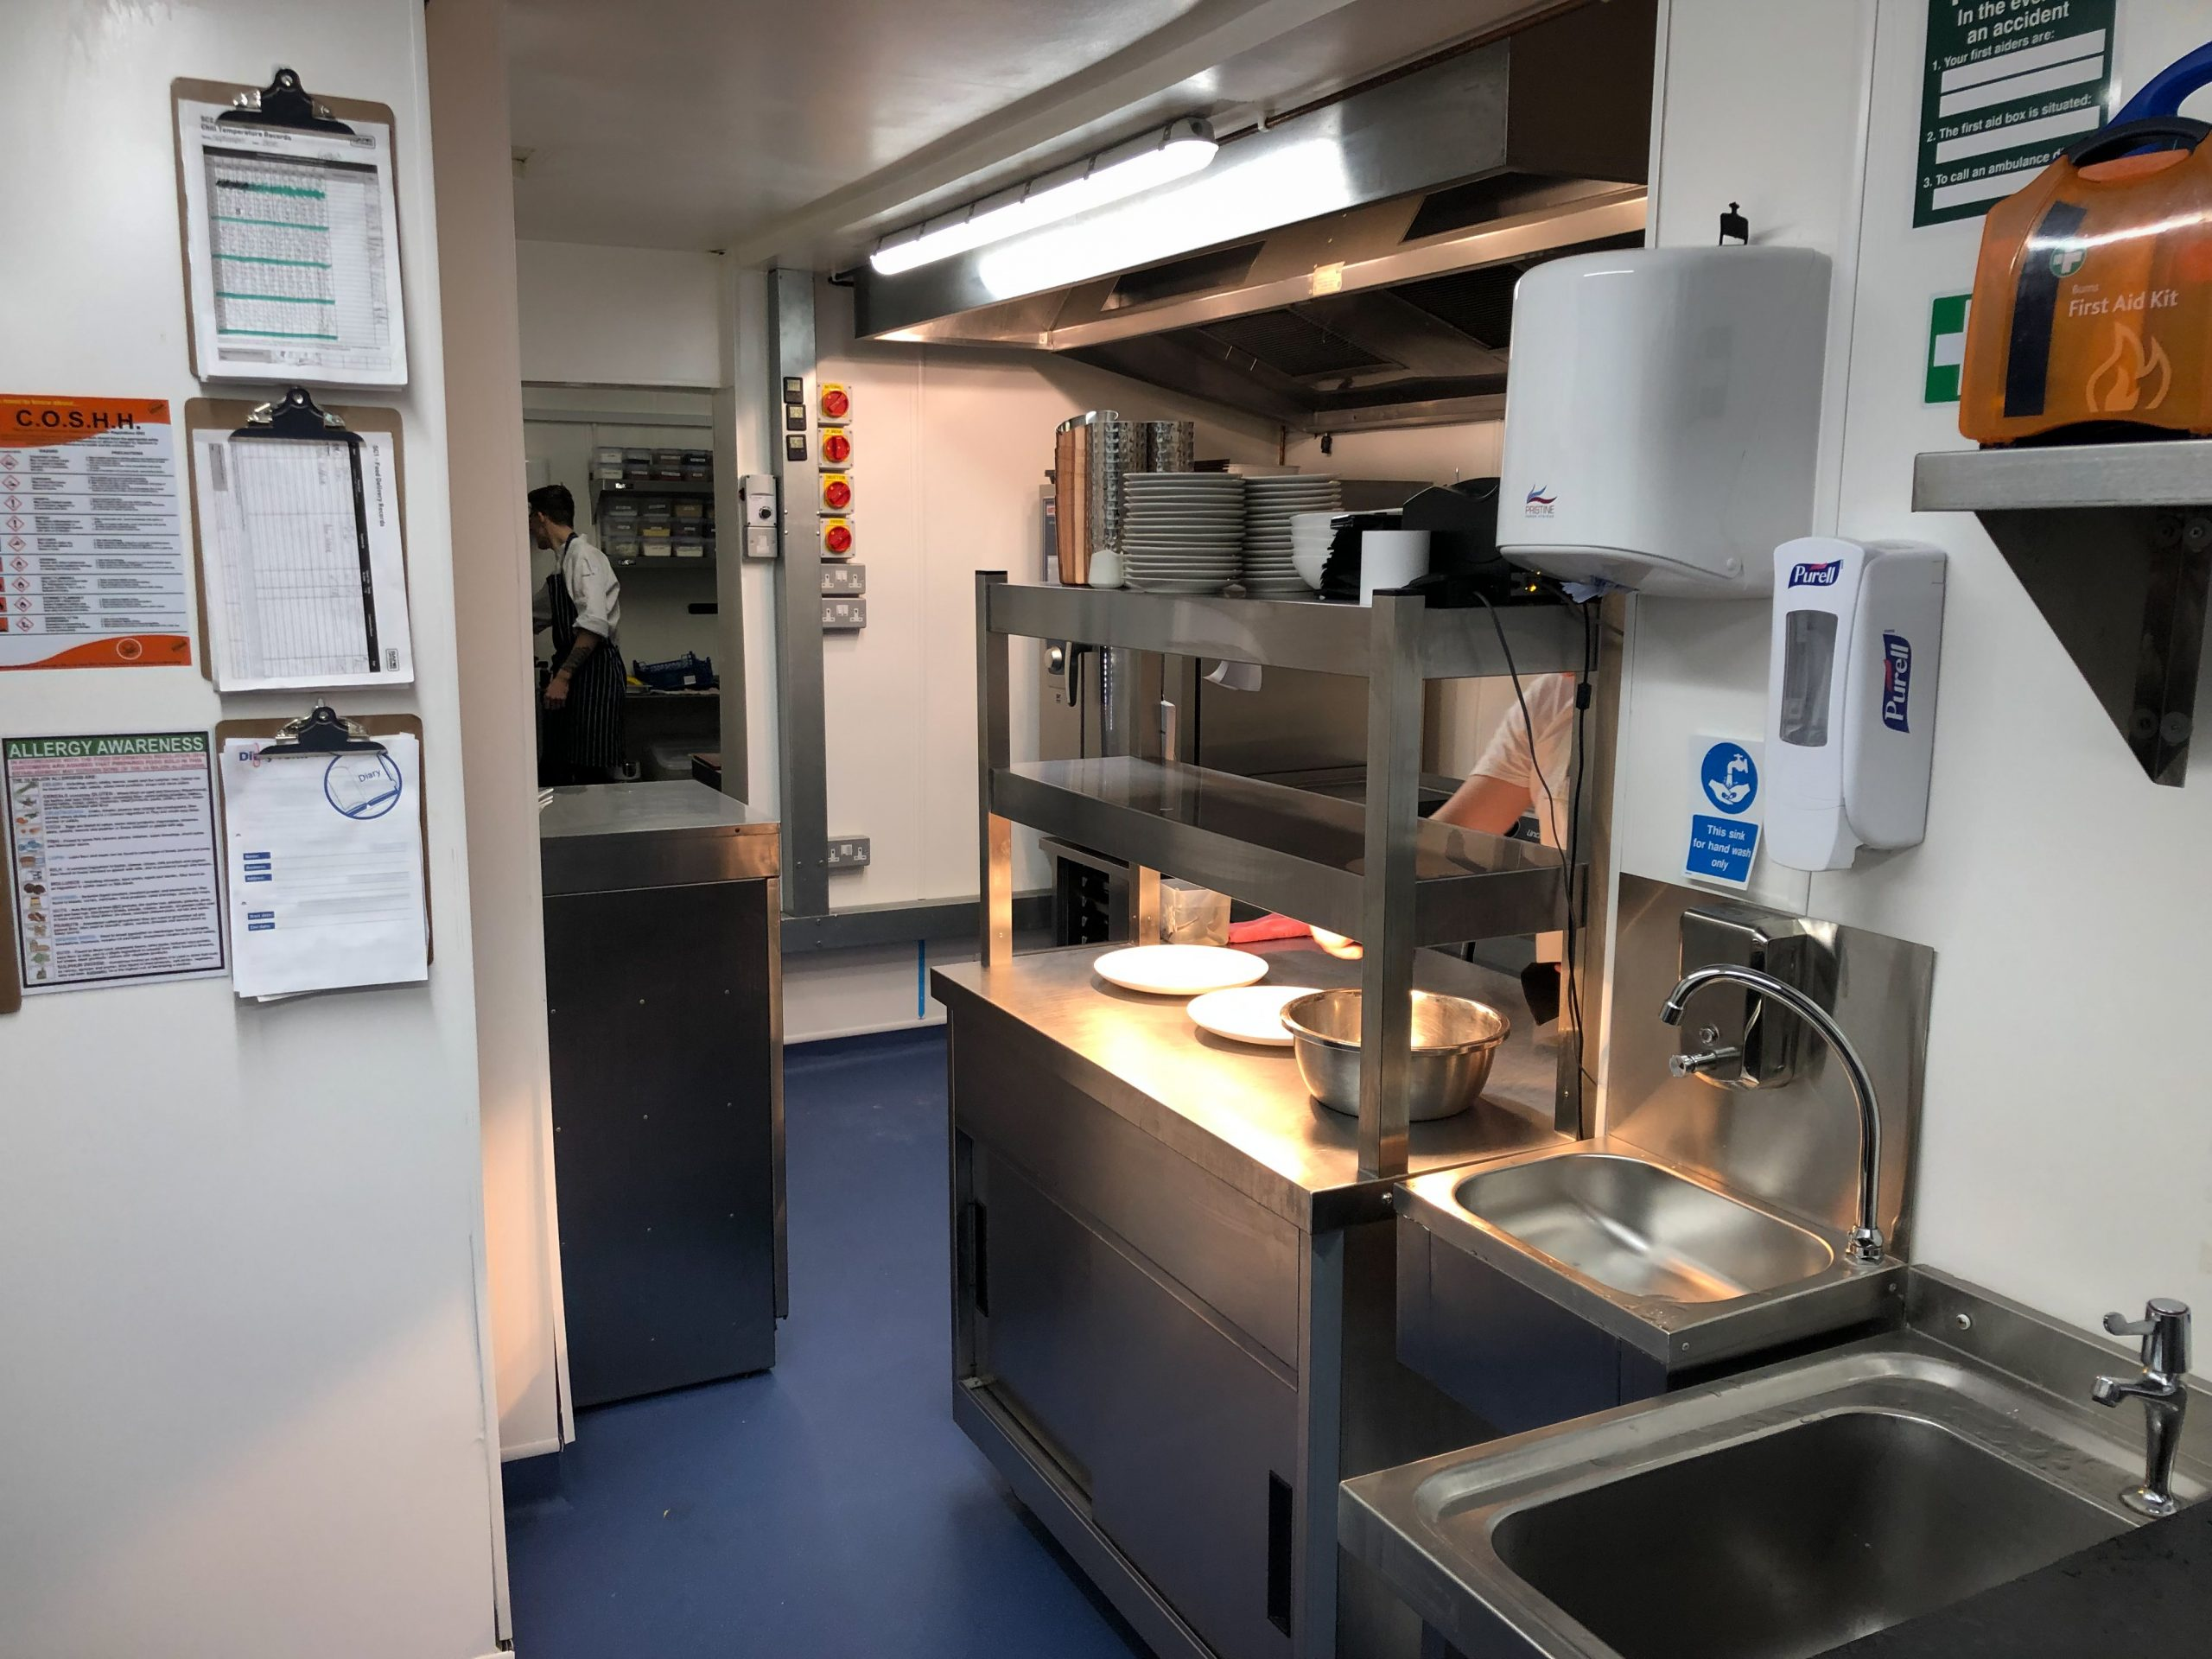 upgraded catering facilities at the Lyon Inn